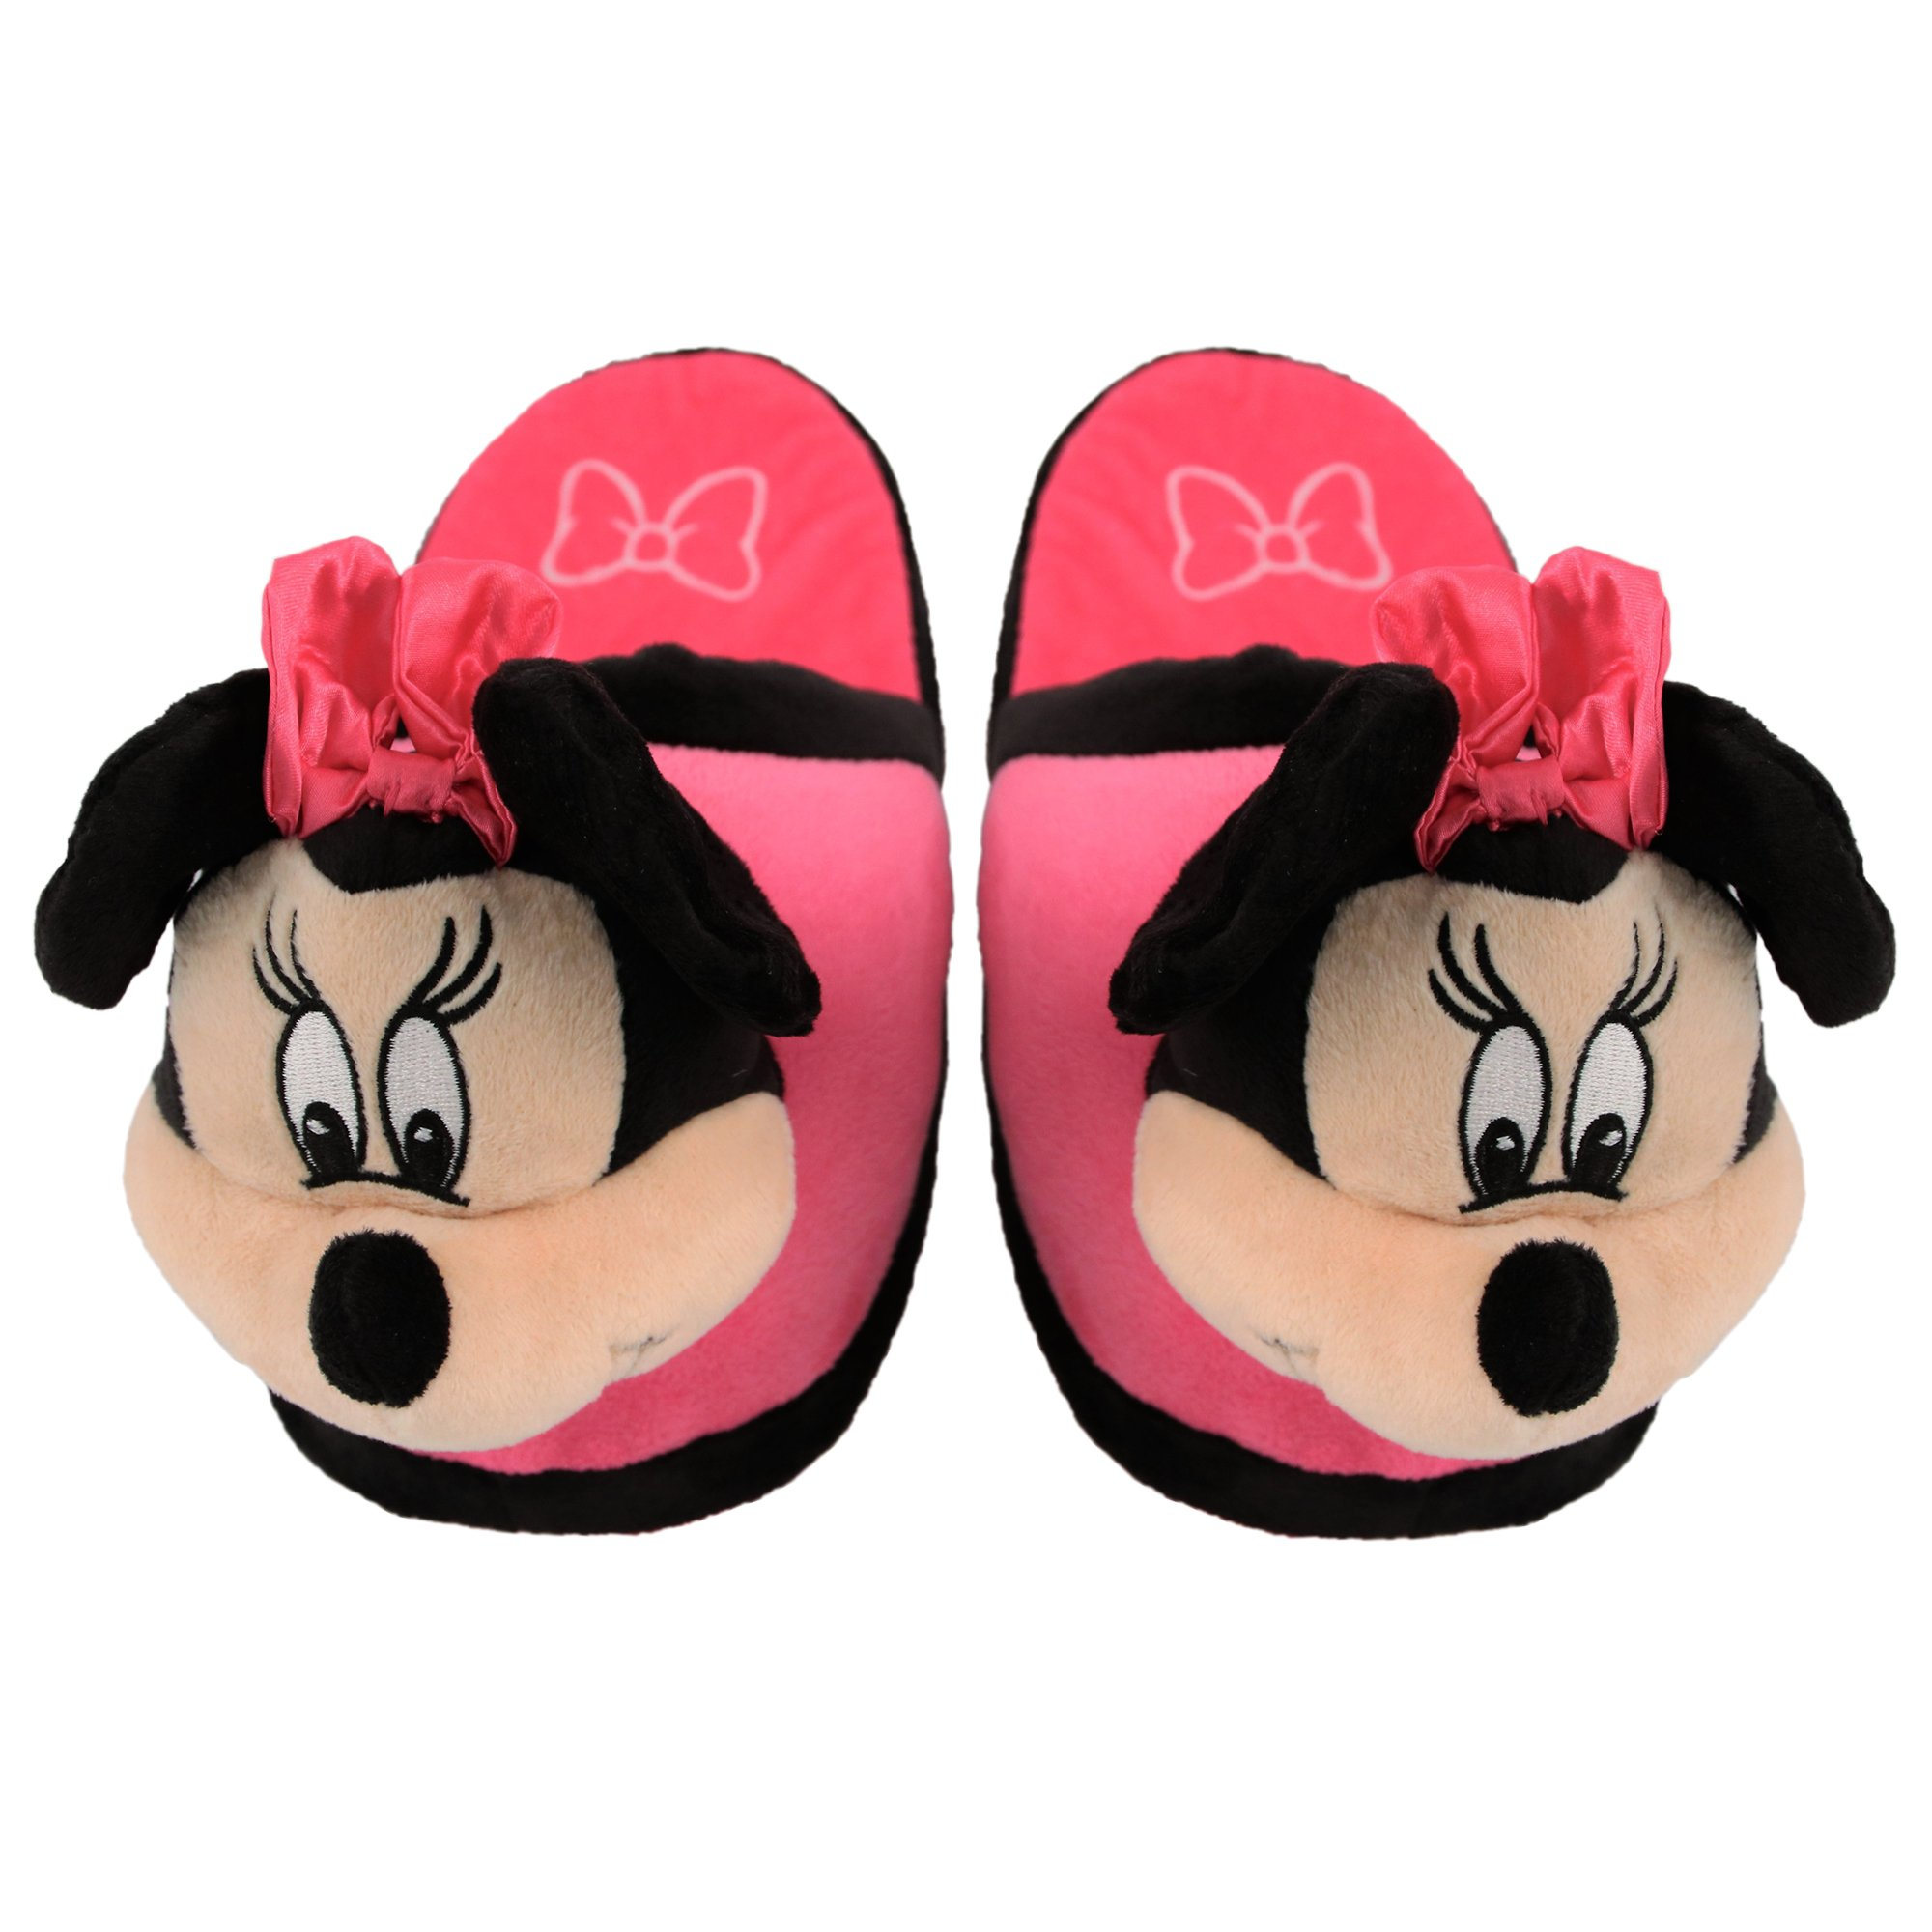 Stompeez Animated Minnie Mouse Plush Slippers - Ultra Soft and Fuzzy - Ears Flap as You Walk - Medium